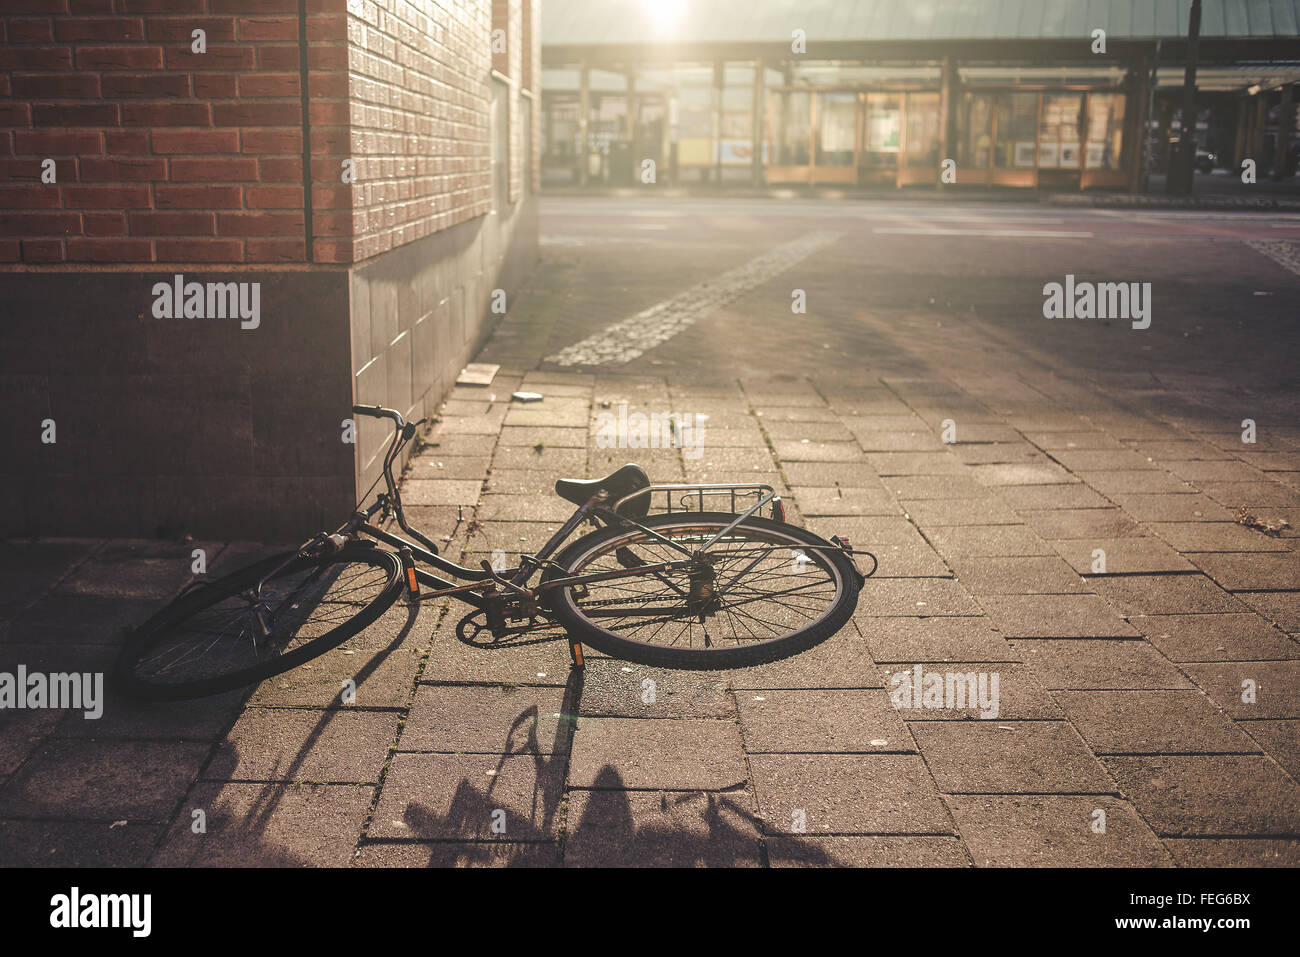 Old bicycle left and forgotten on city street pavement - Stock Image